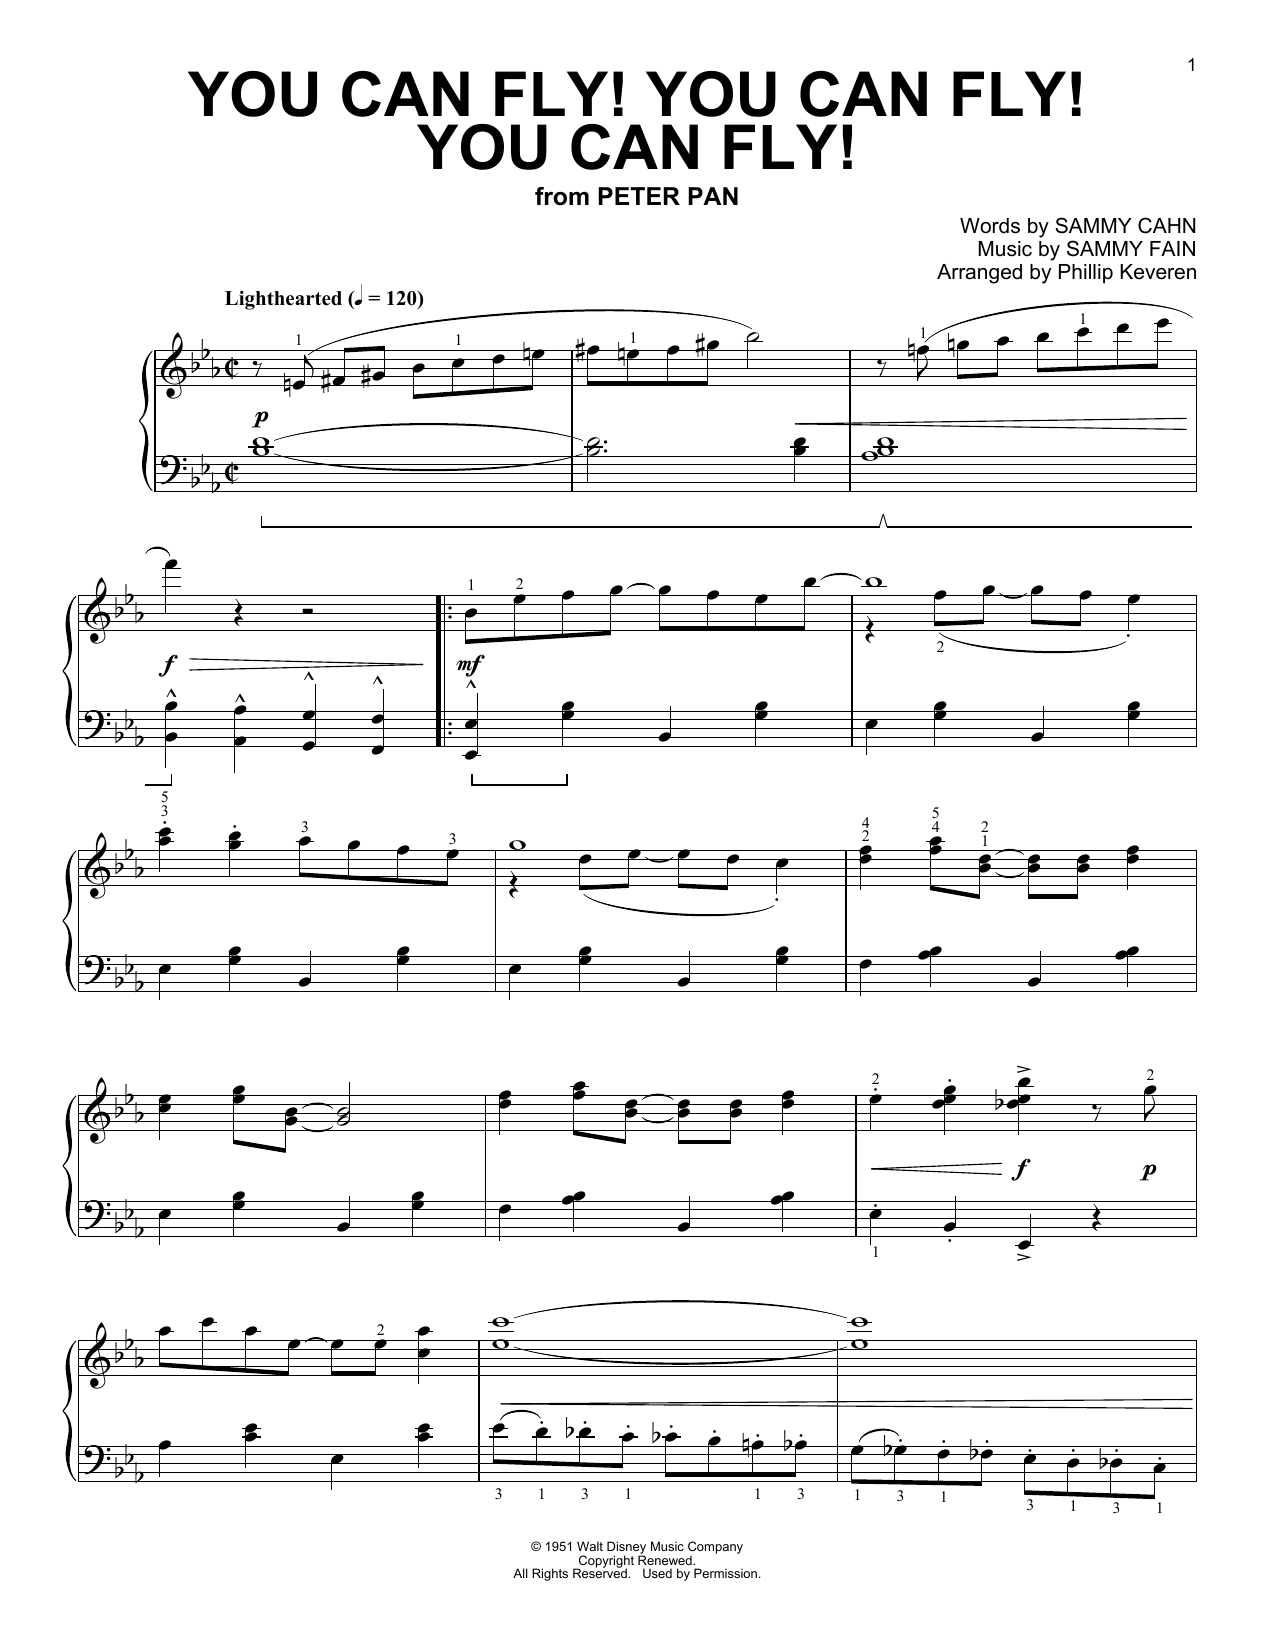 Sammy Fain You Can Fly! You Can Fly! You Can Fly! [Ragtime version] (arr. Phillip Keveren) sheet music notes and chords. Download Printable PDF.